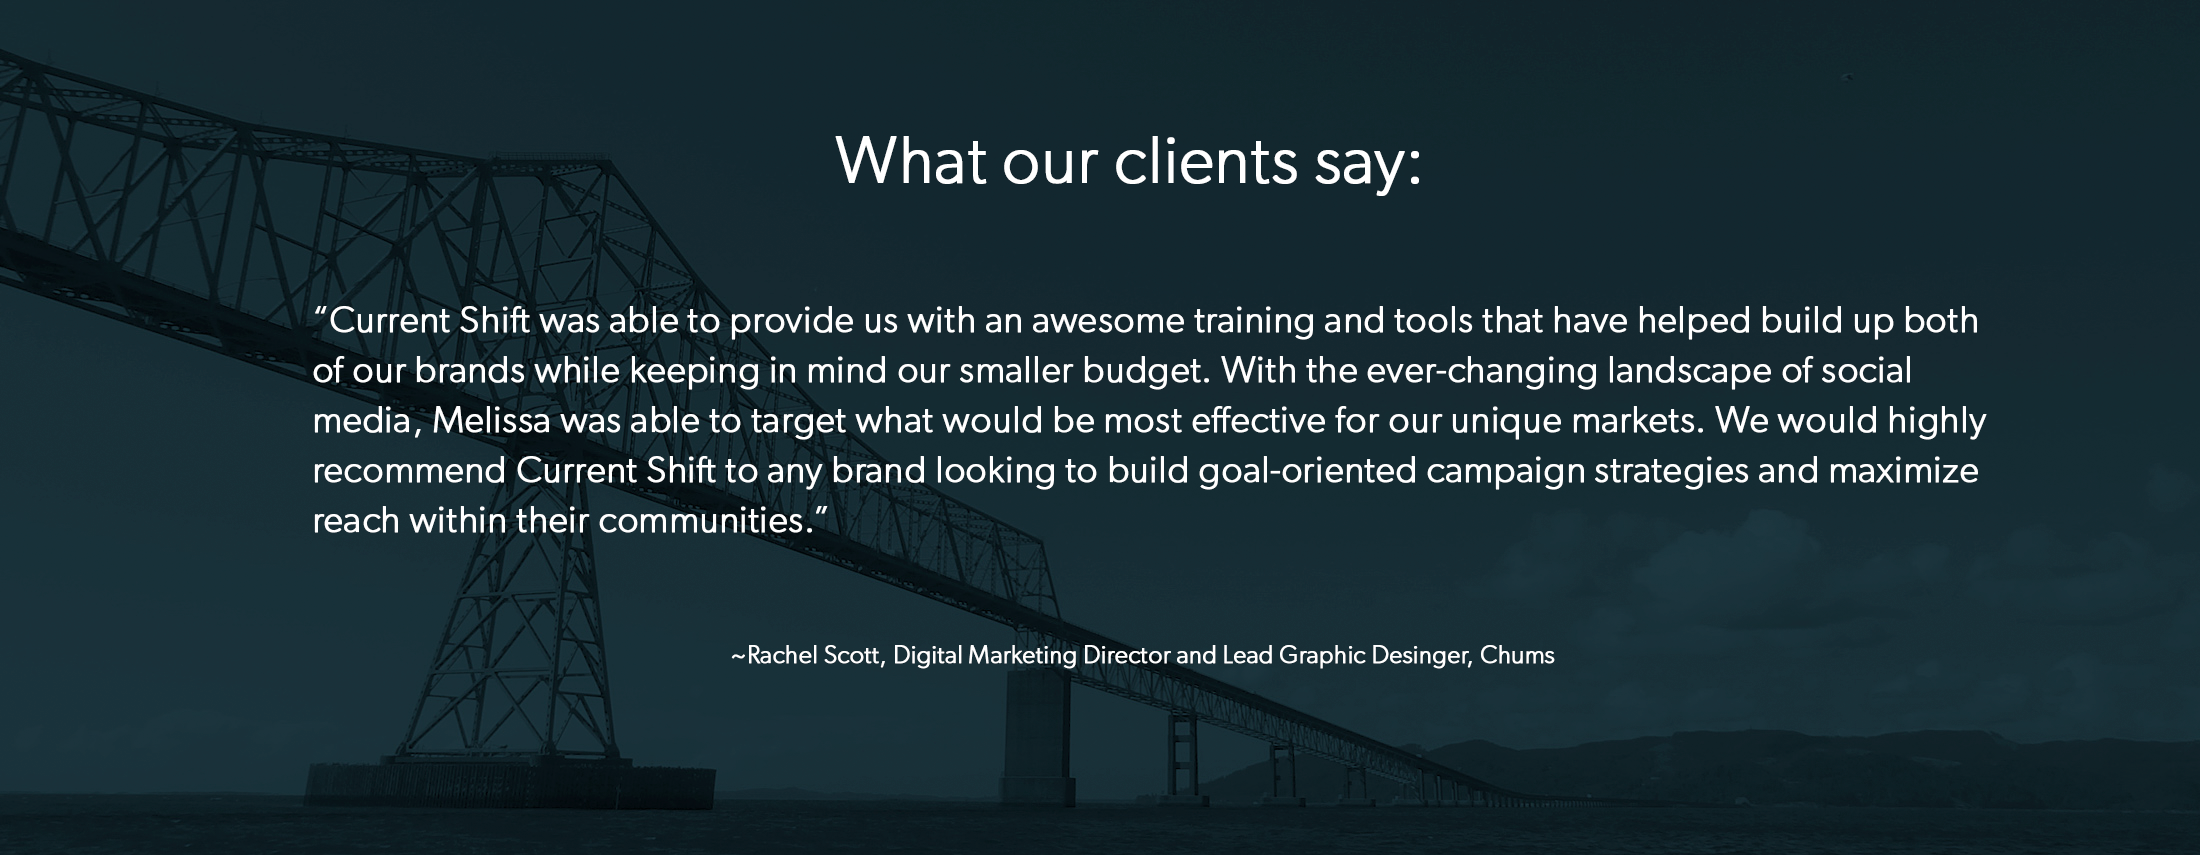 what_our_clients_say_chums